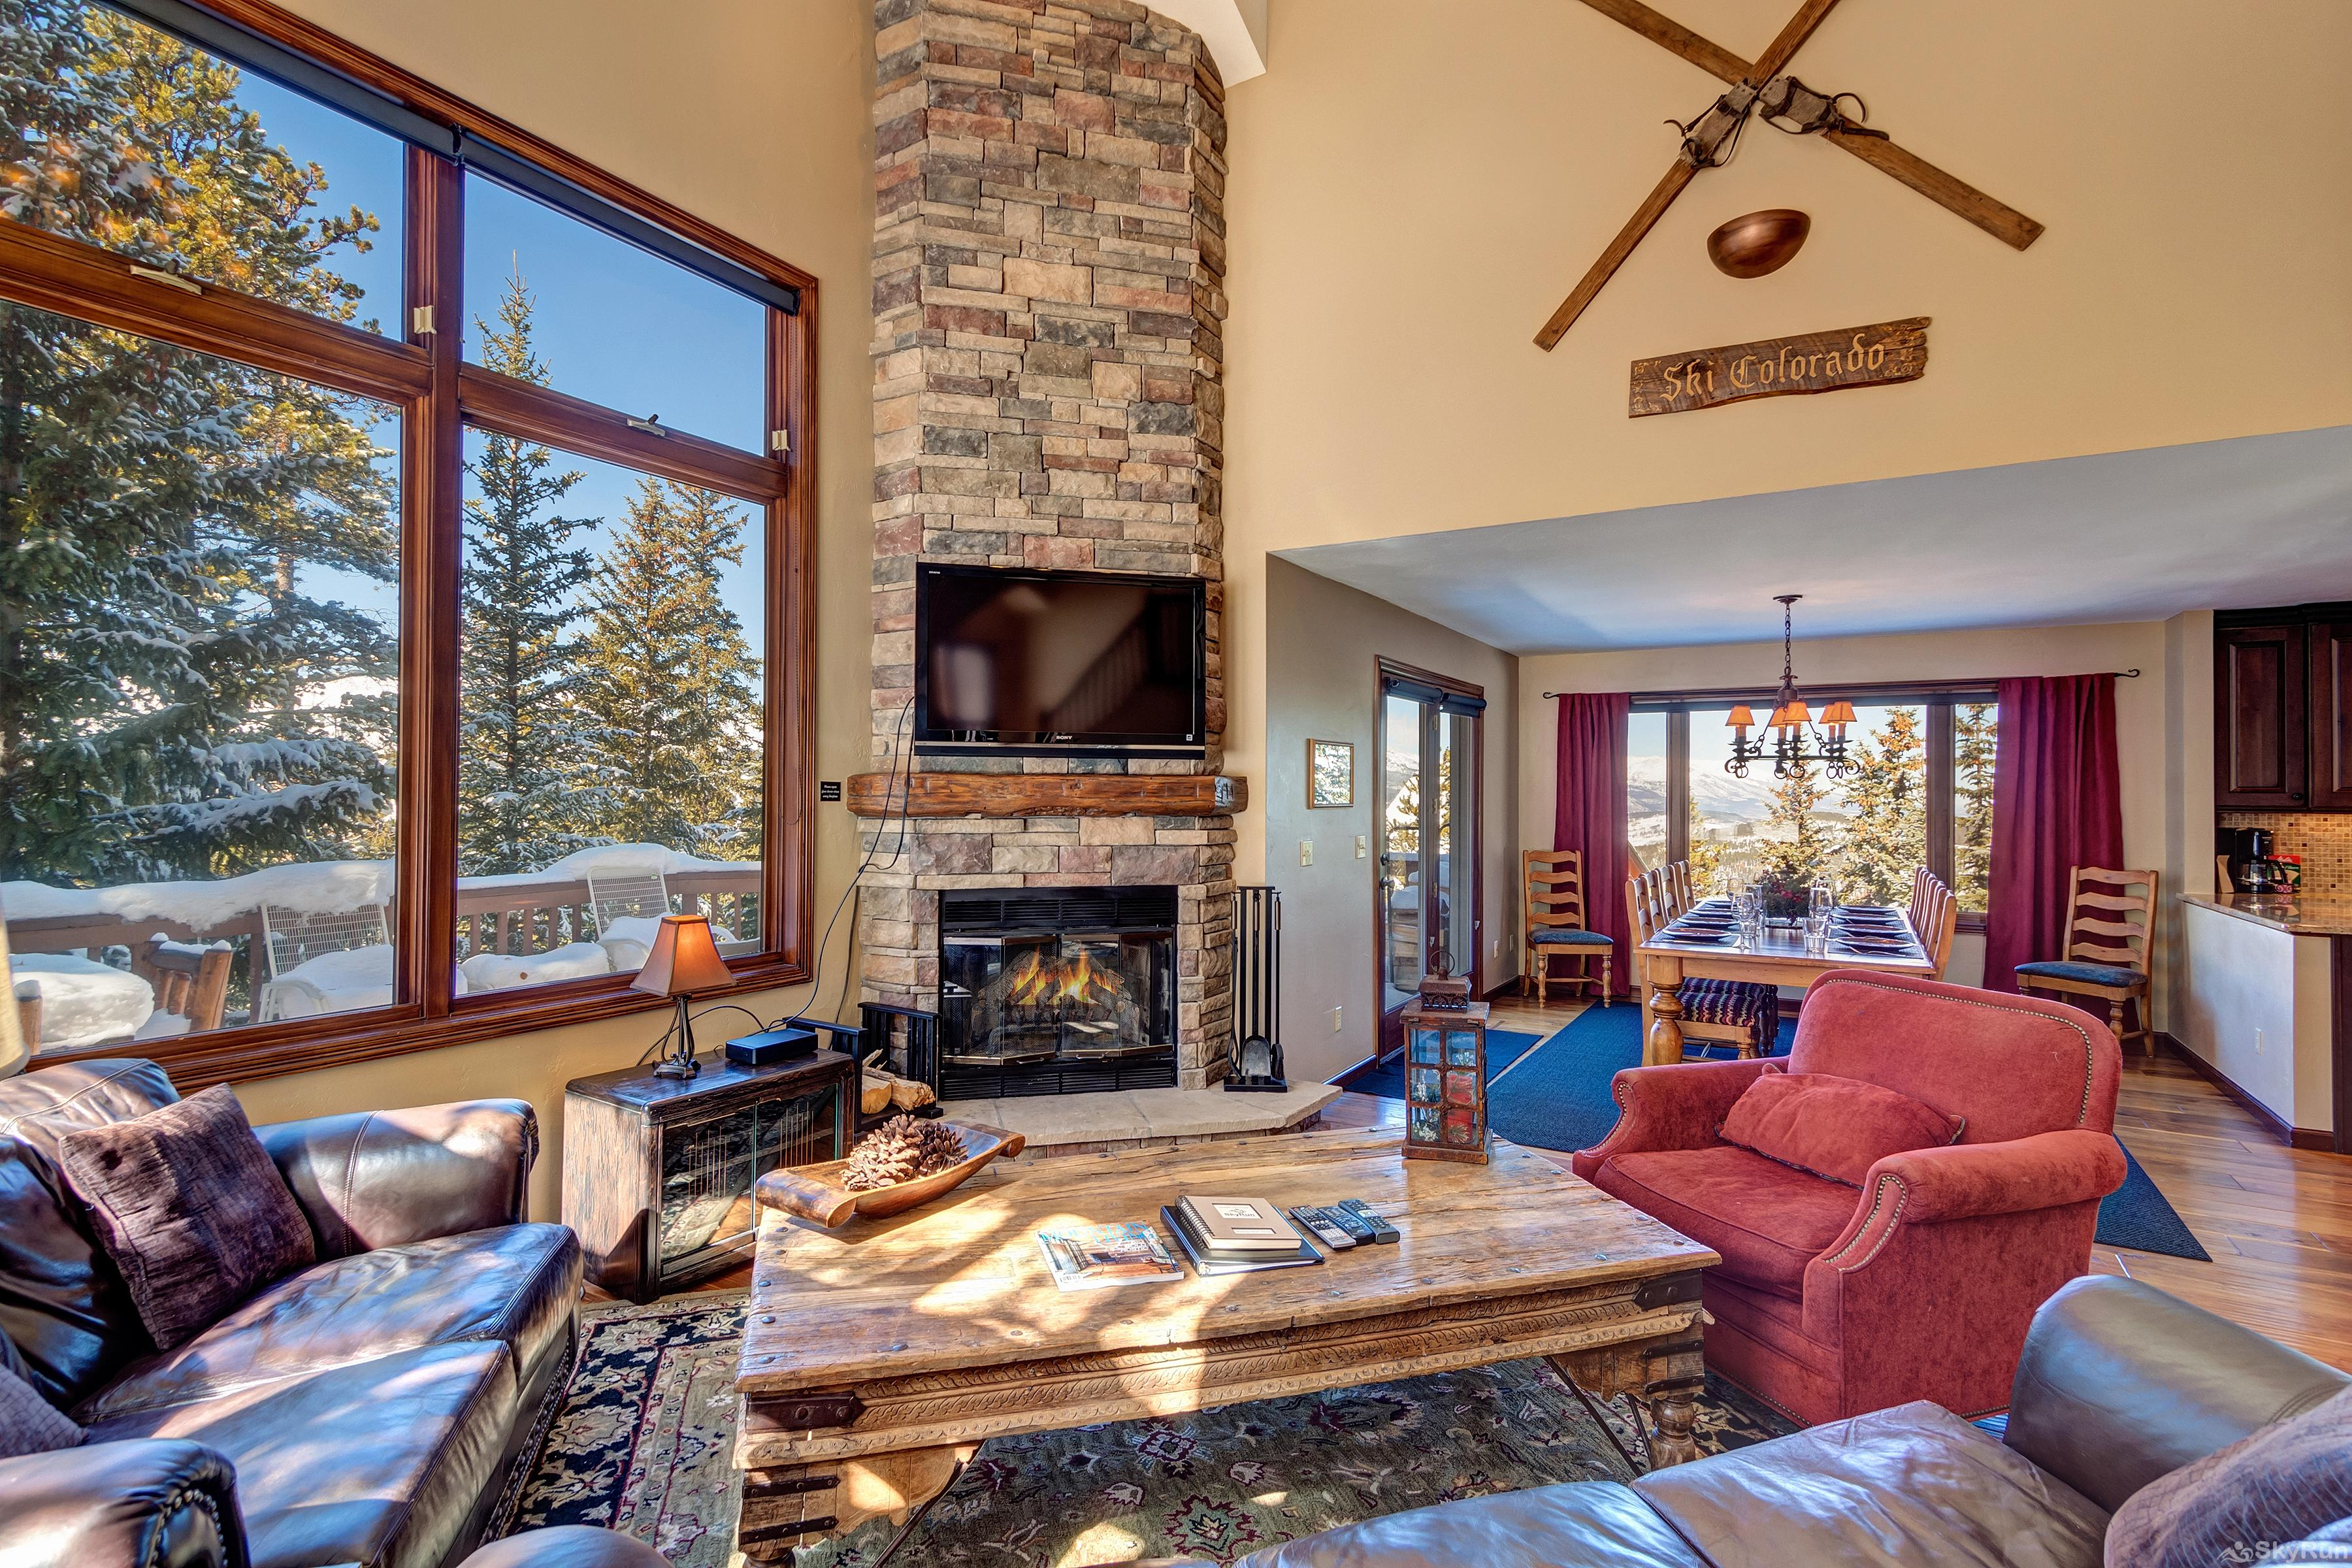 Grande Vista Beautiful floor-to-ceiling stone fireplace